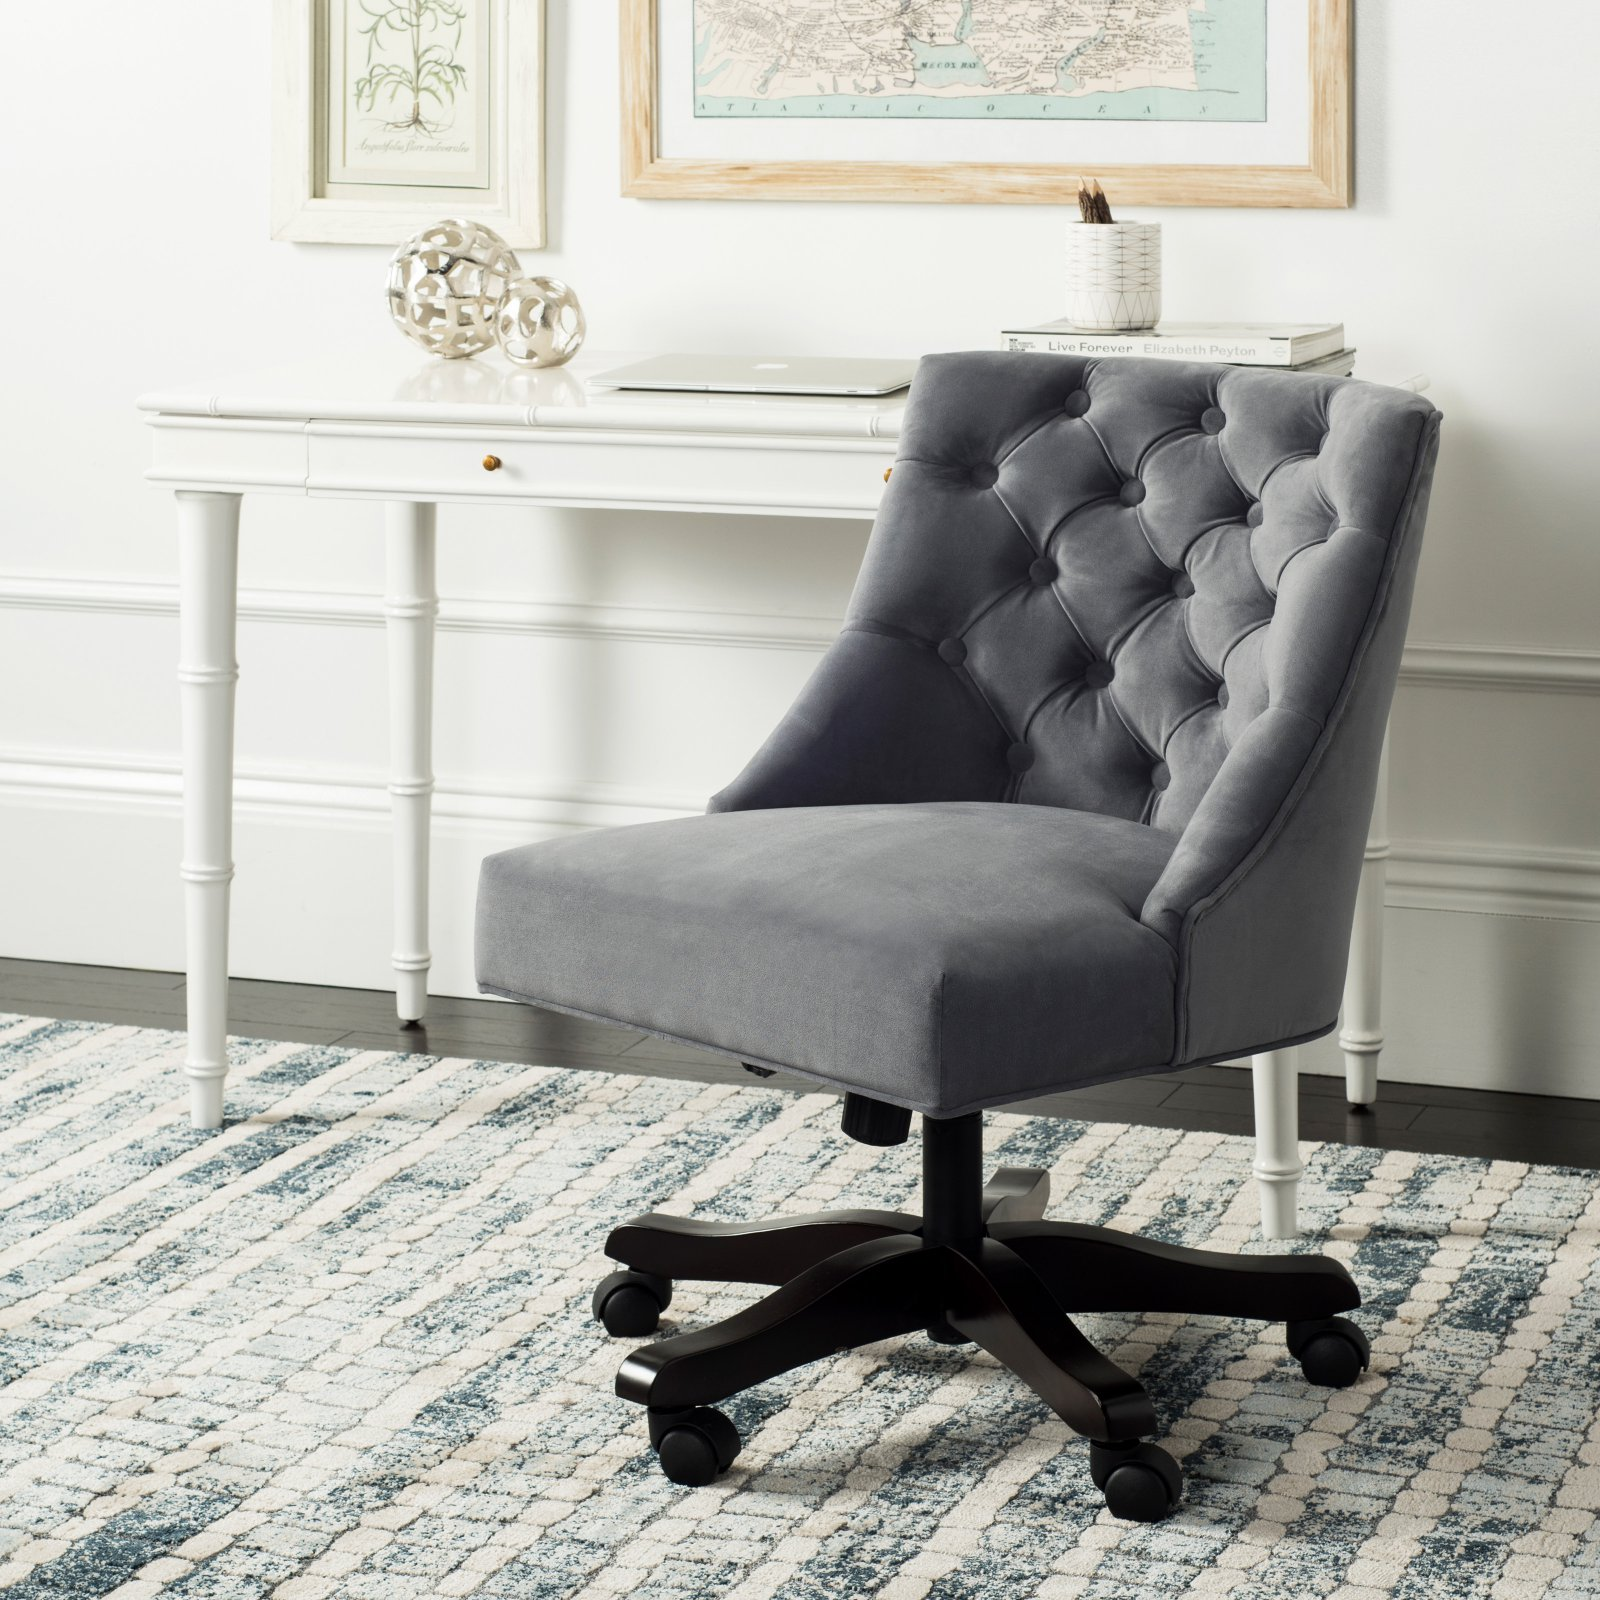 Safavieh Soho Transitional Tufted Swivel Desk Chair